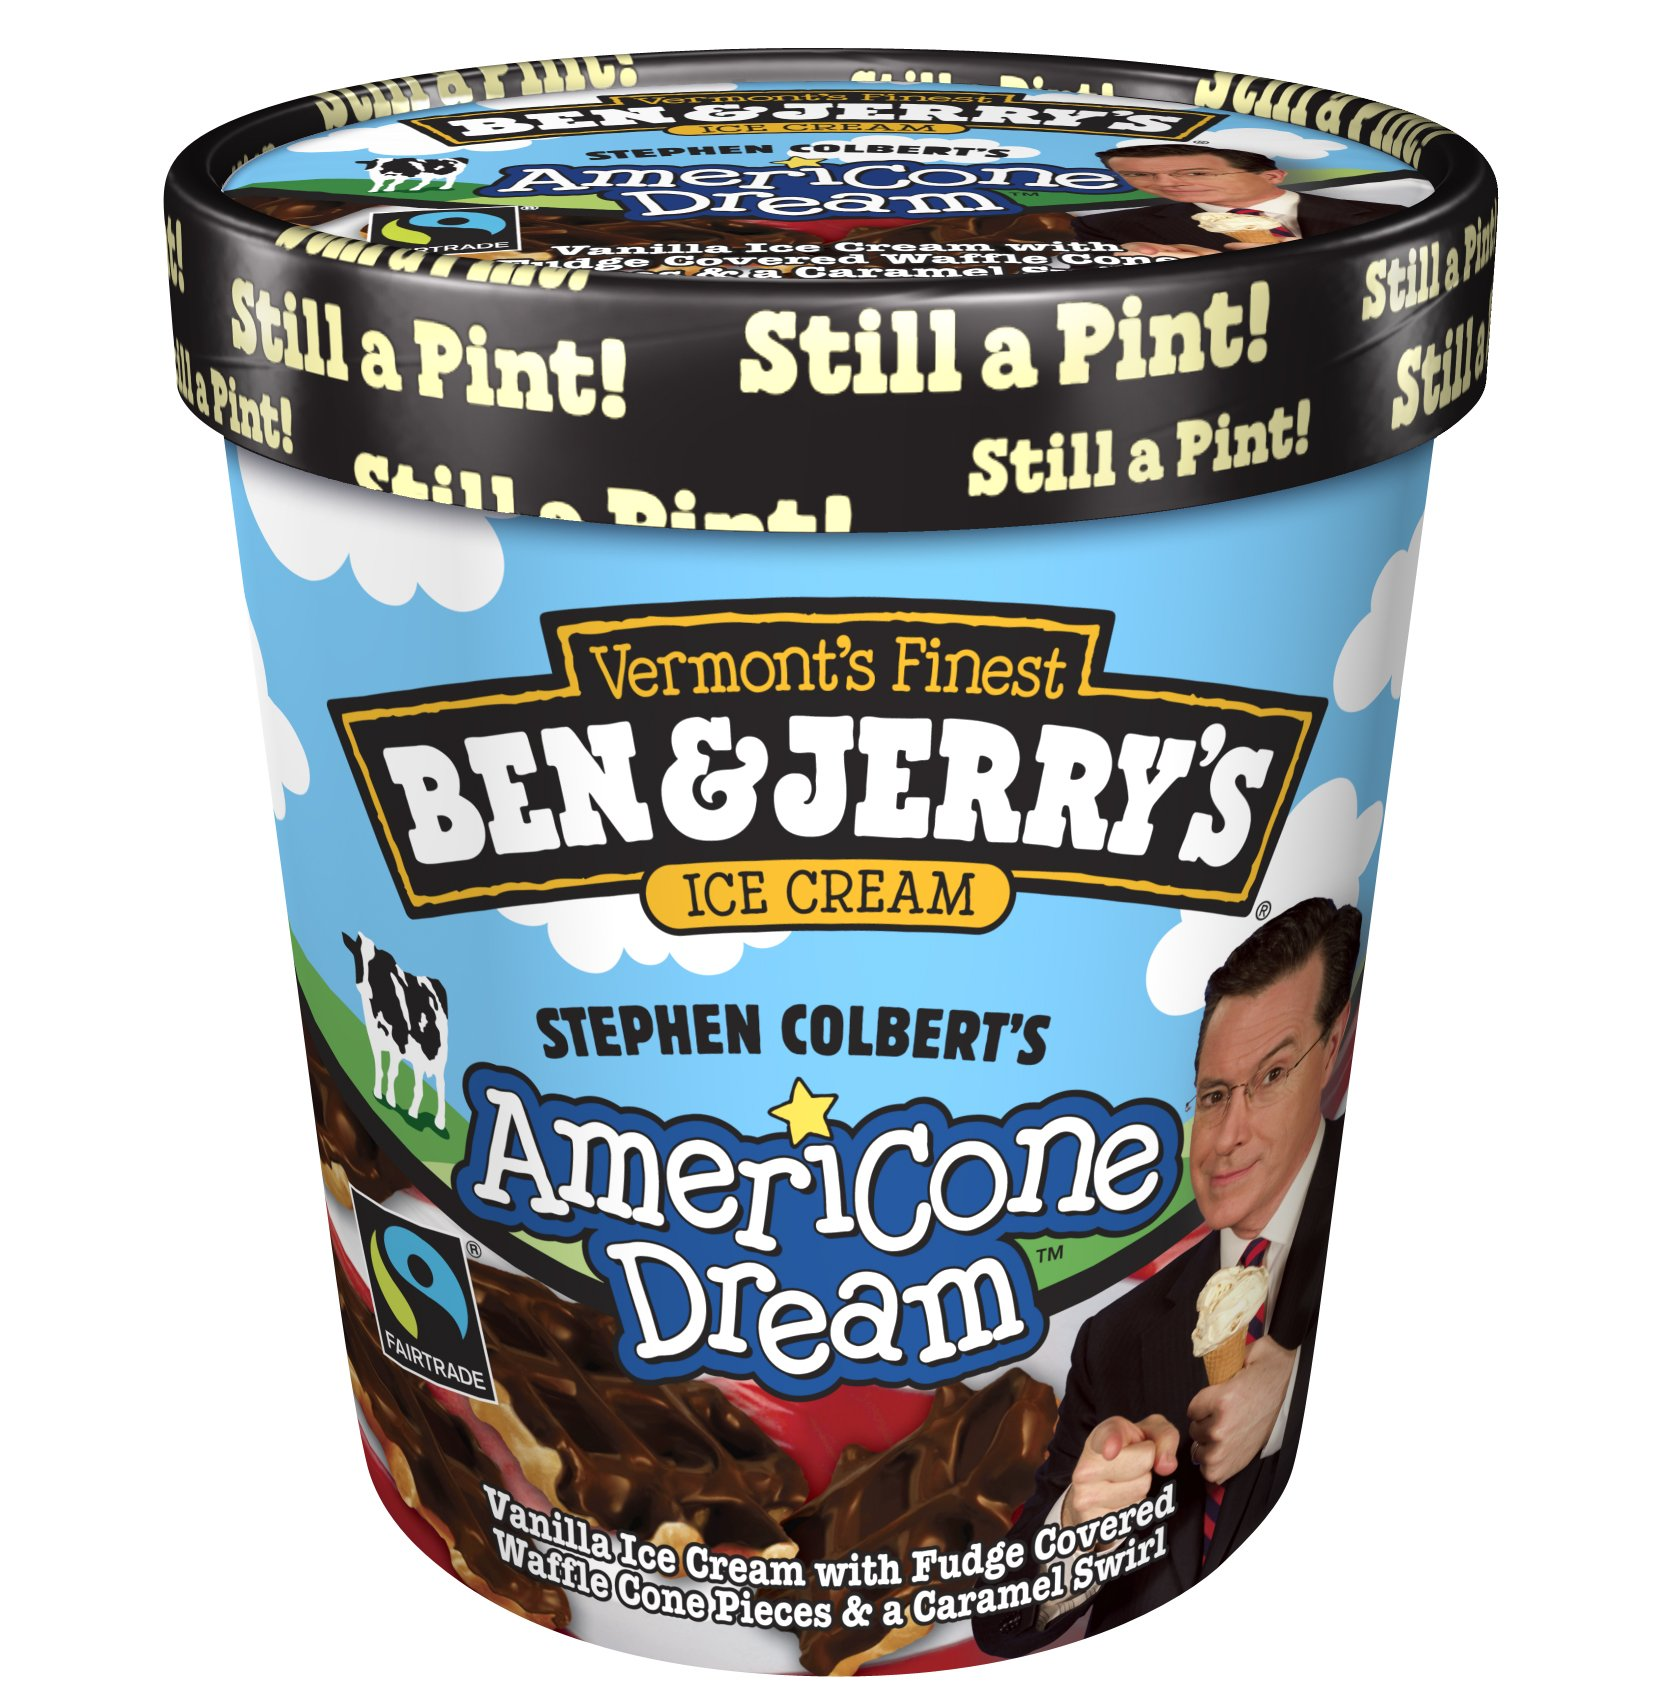 The Stephen Colbert Americone Dream Fund Benefits Healing Improv Stephen colbert donates his proceeds from the sale of americone dream™ to charity through the stephen colbert americone dream fund. the stephen colbert americone dream